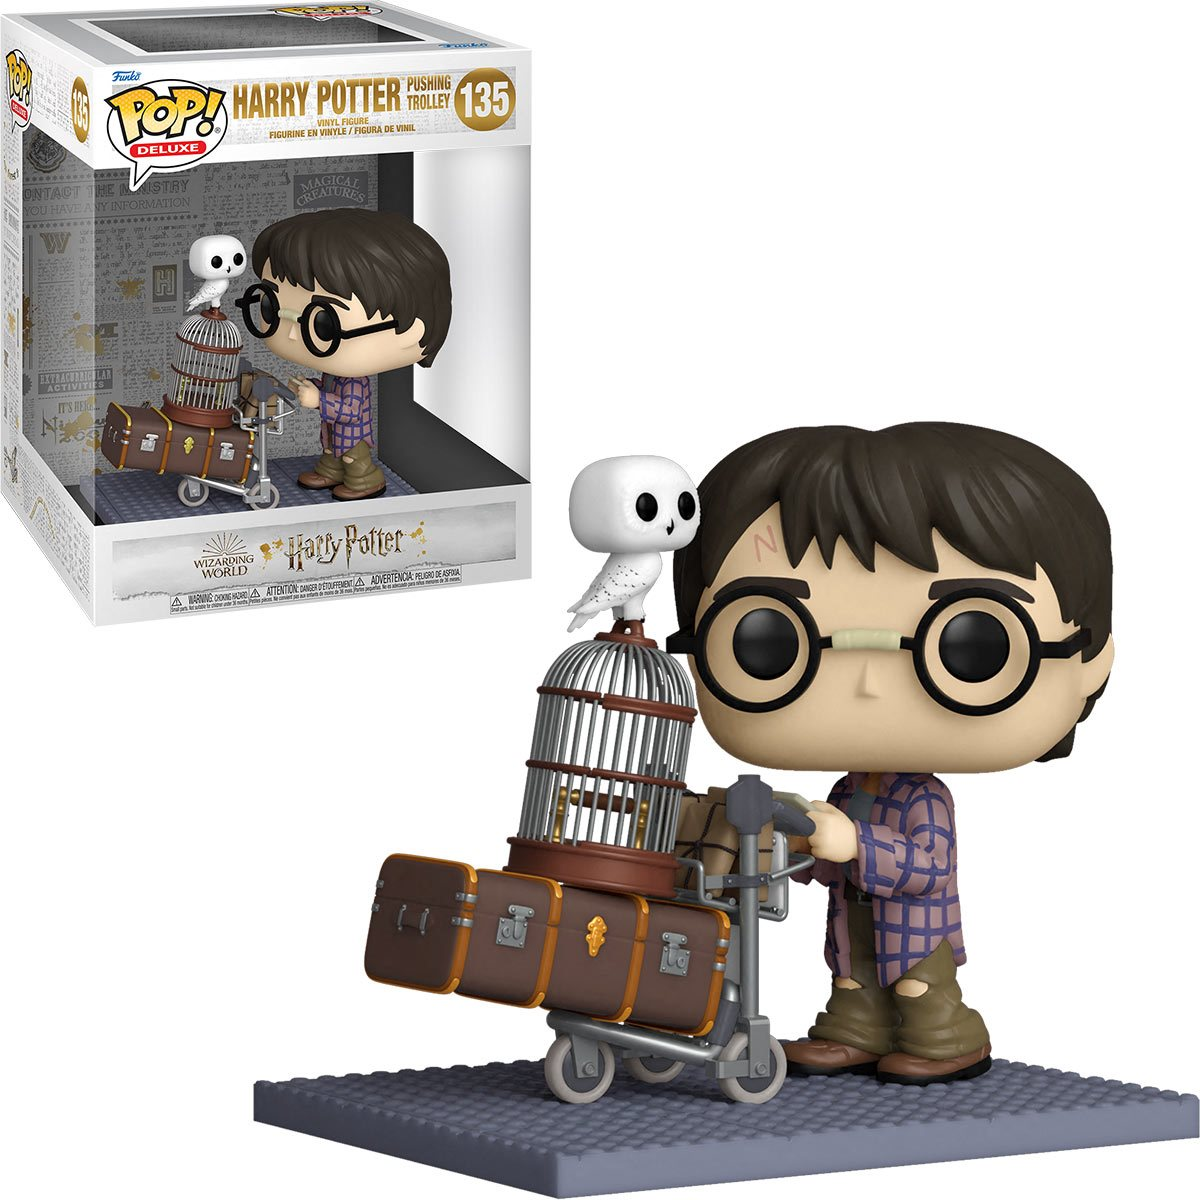 Harry Potter Funko Pop! with Trolley